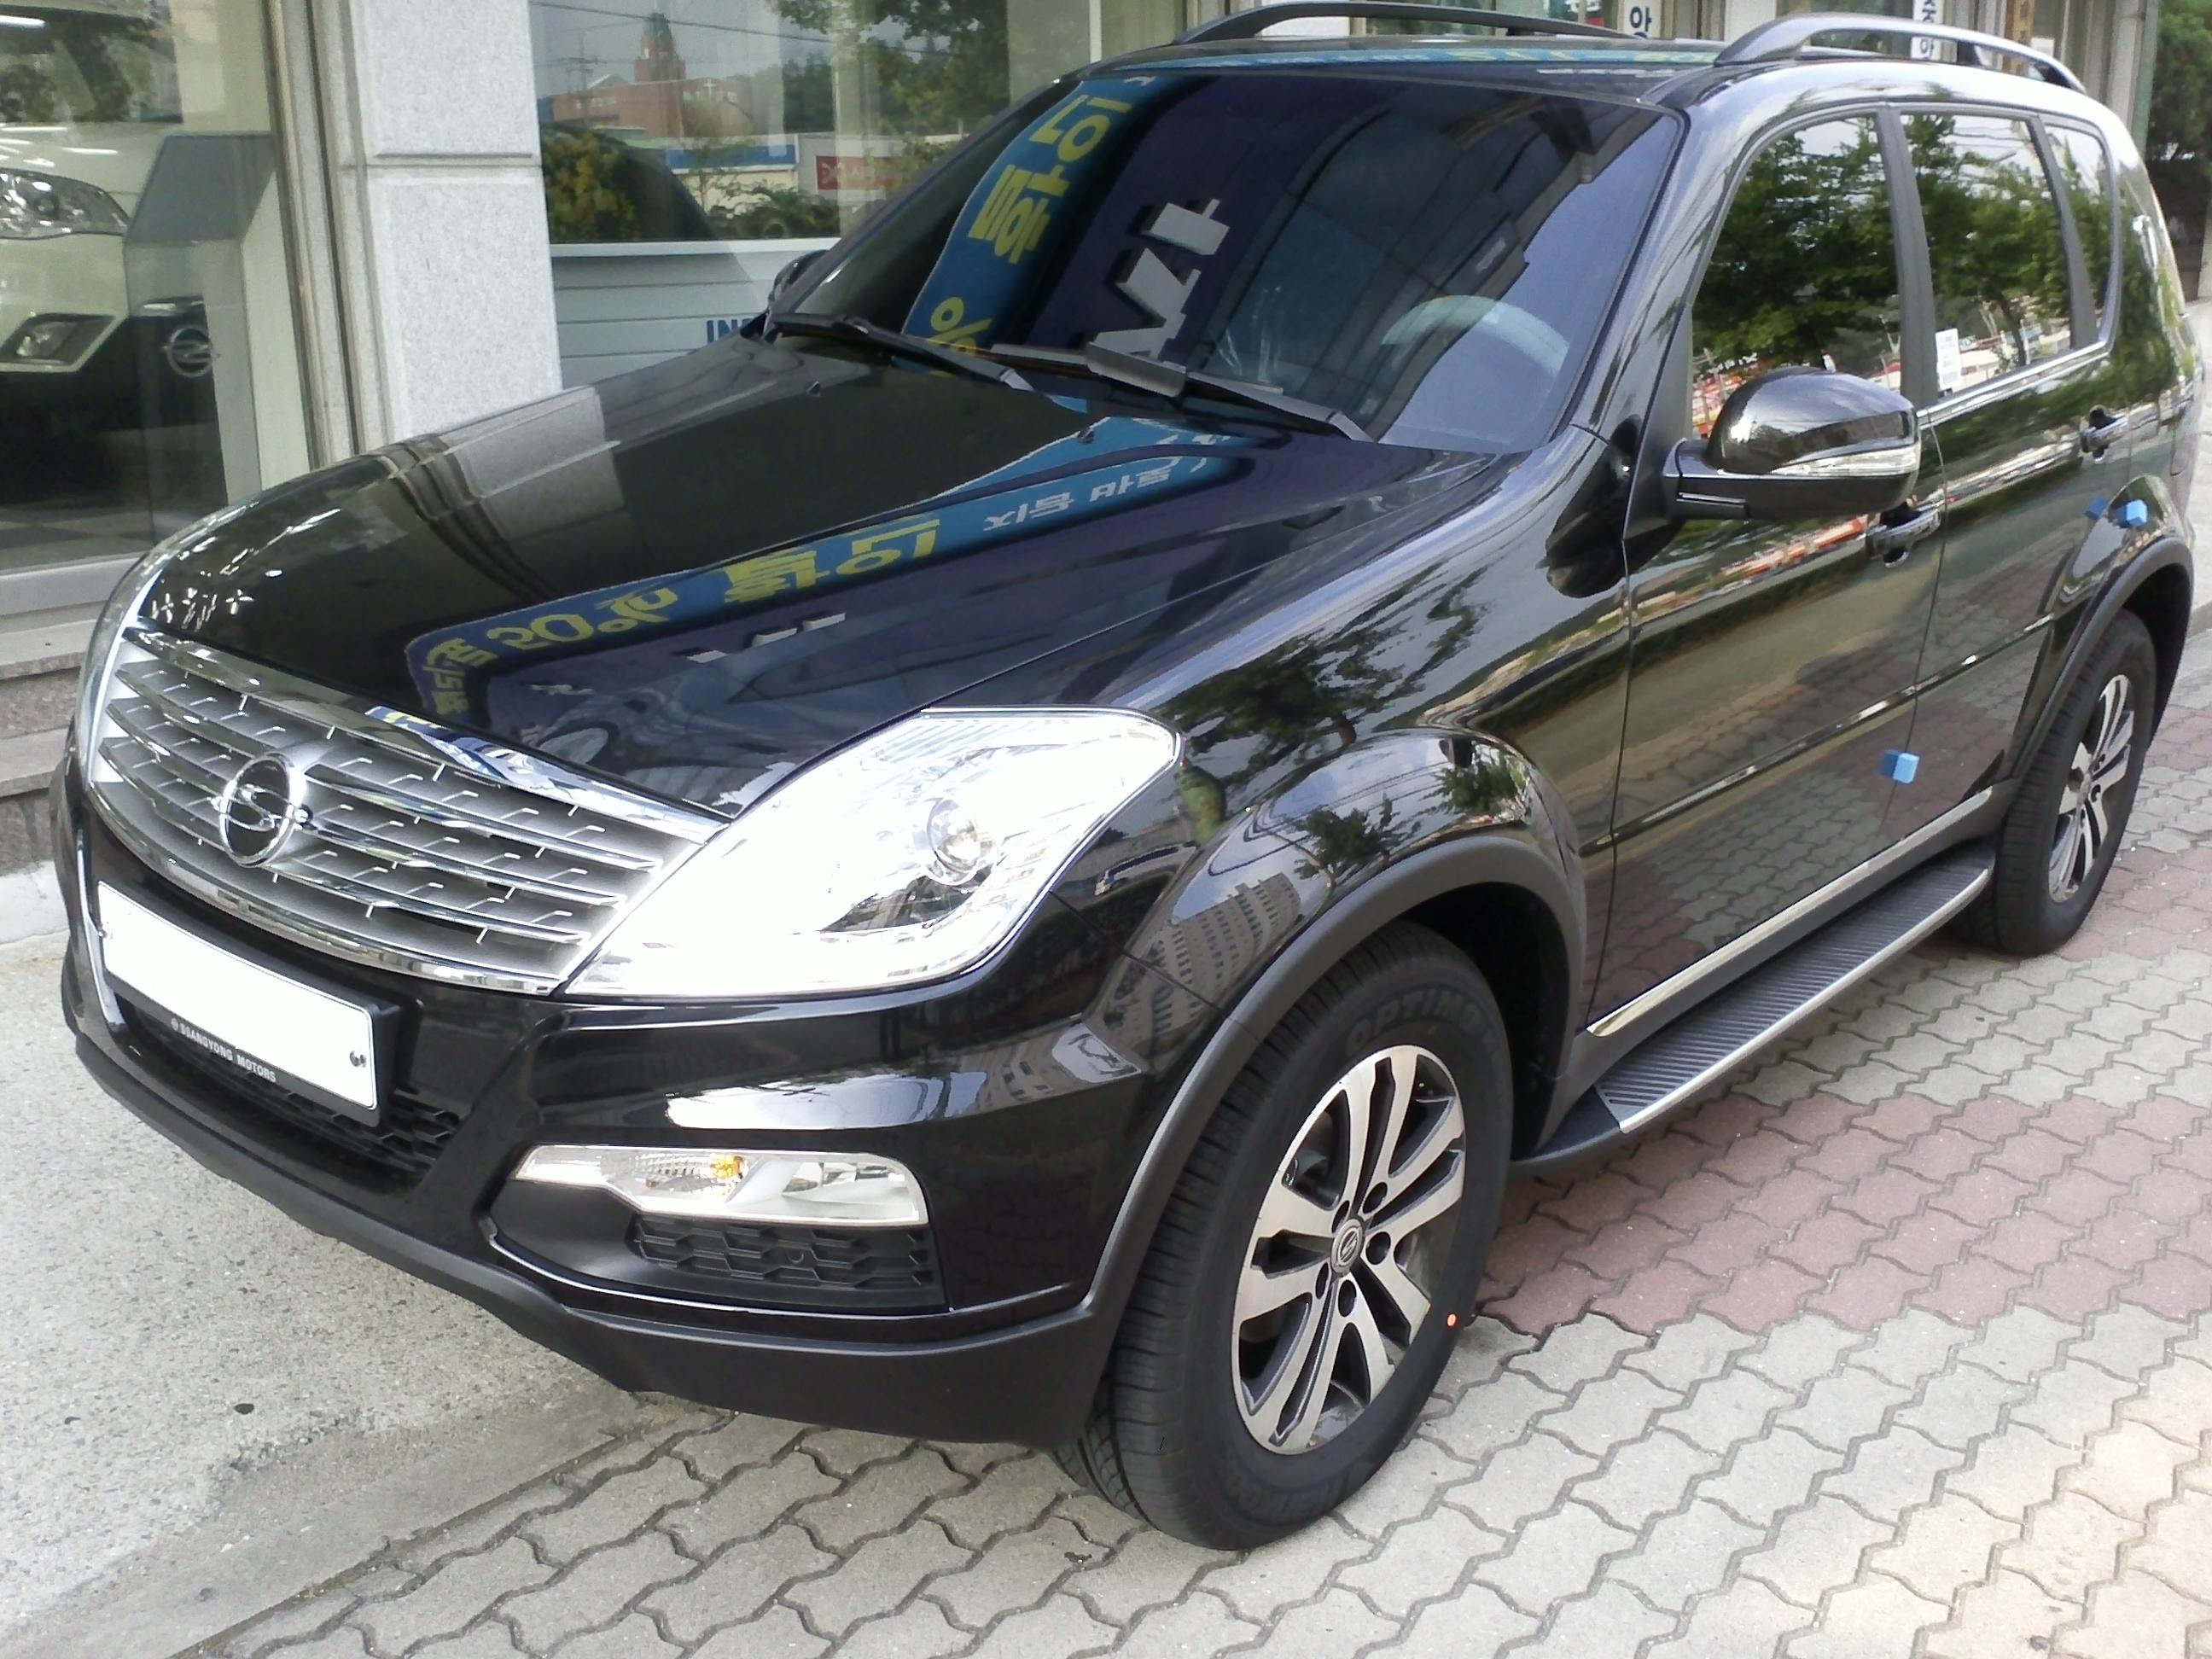 file 20120627 ssangyong rexton w wikimedia commons. Black Bedroom Furniture Sets. Home Design Ideas